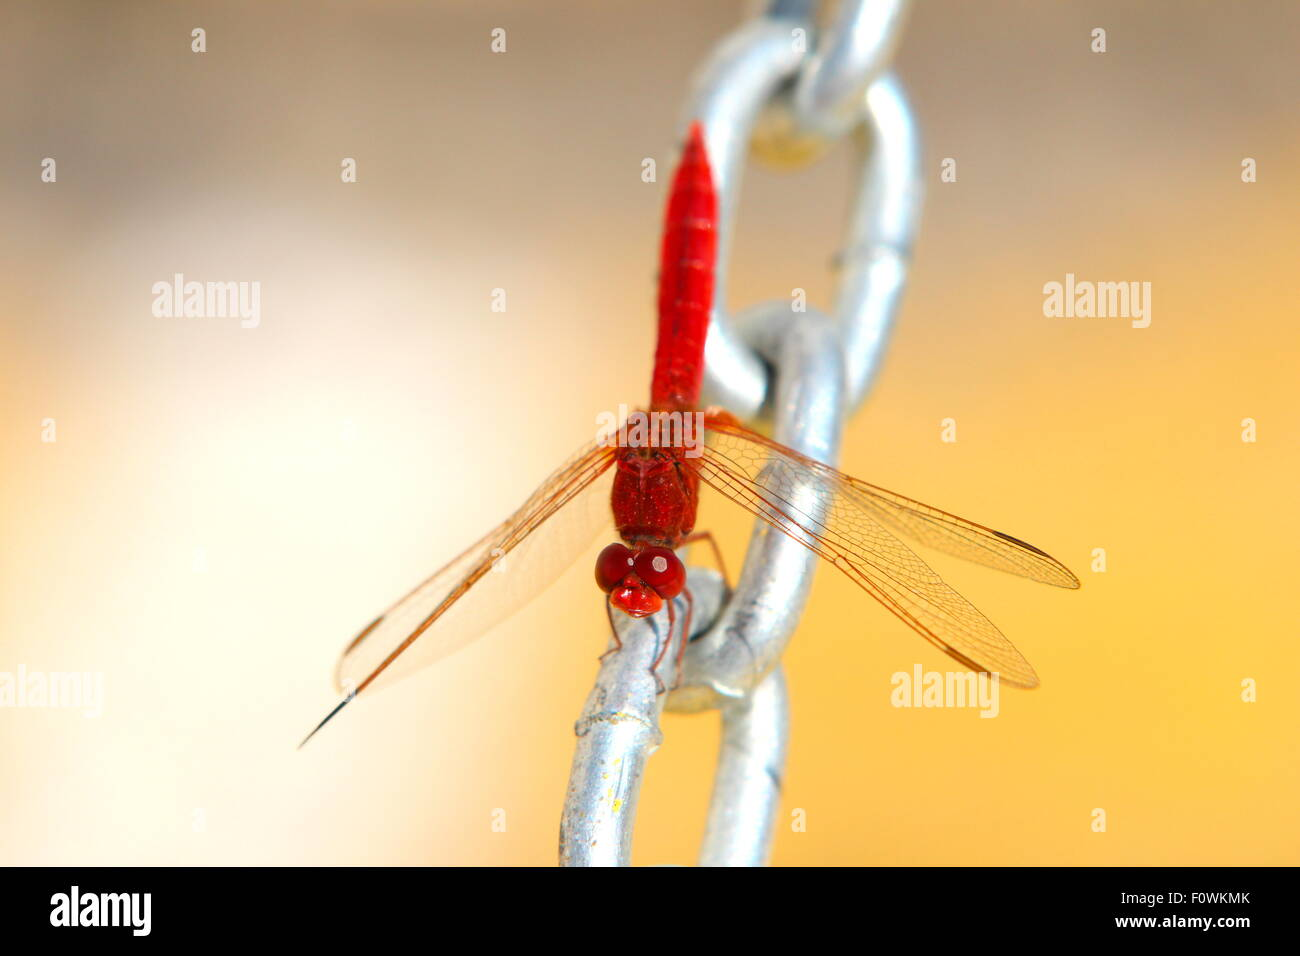 Red Dragonfly on steel chain with yellow background Stock Photo